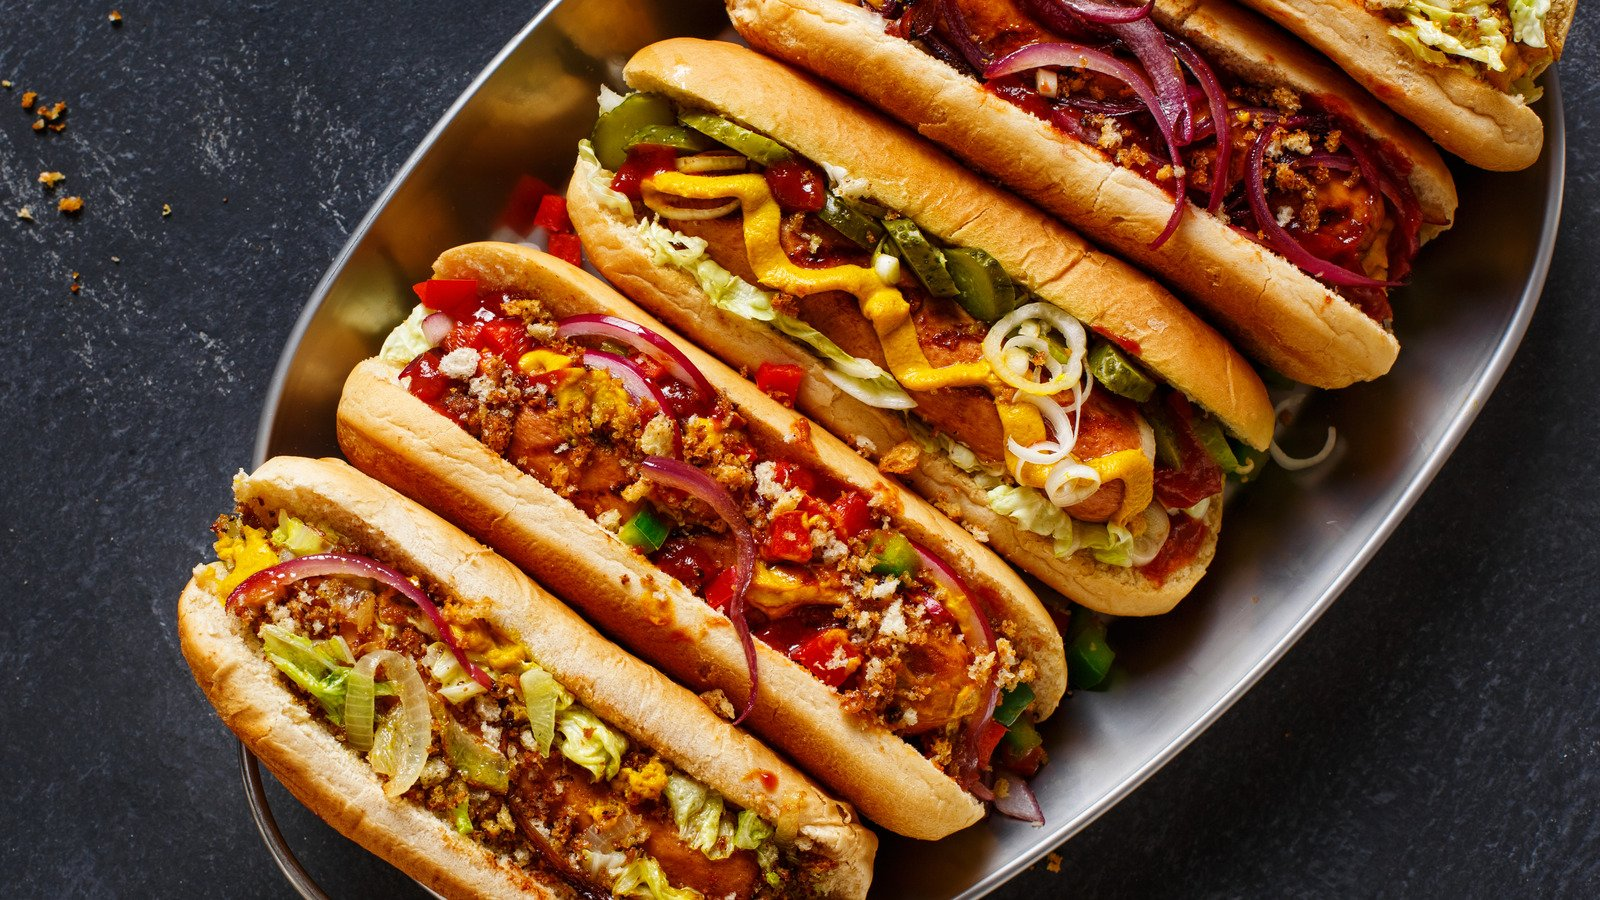 Regional Hot Dog Styles Ranked From Worst To Best